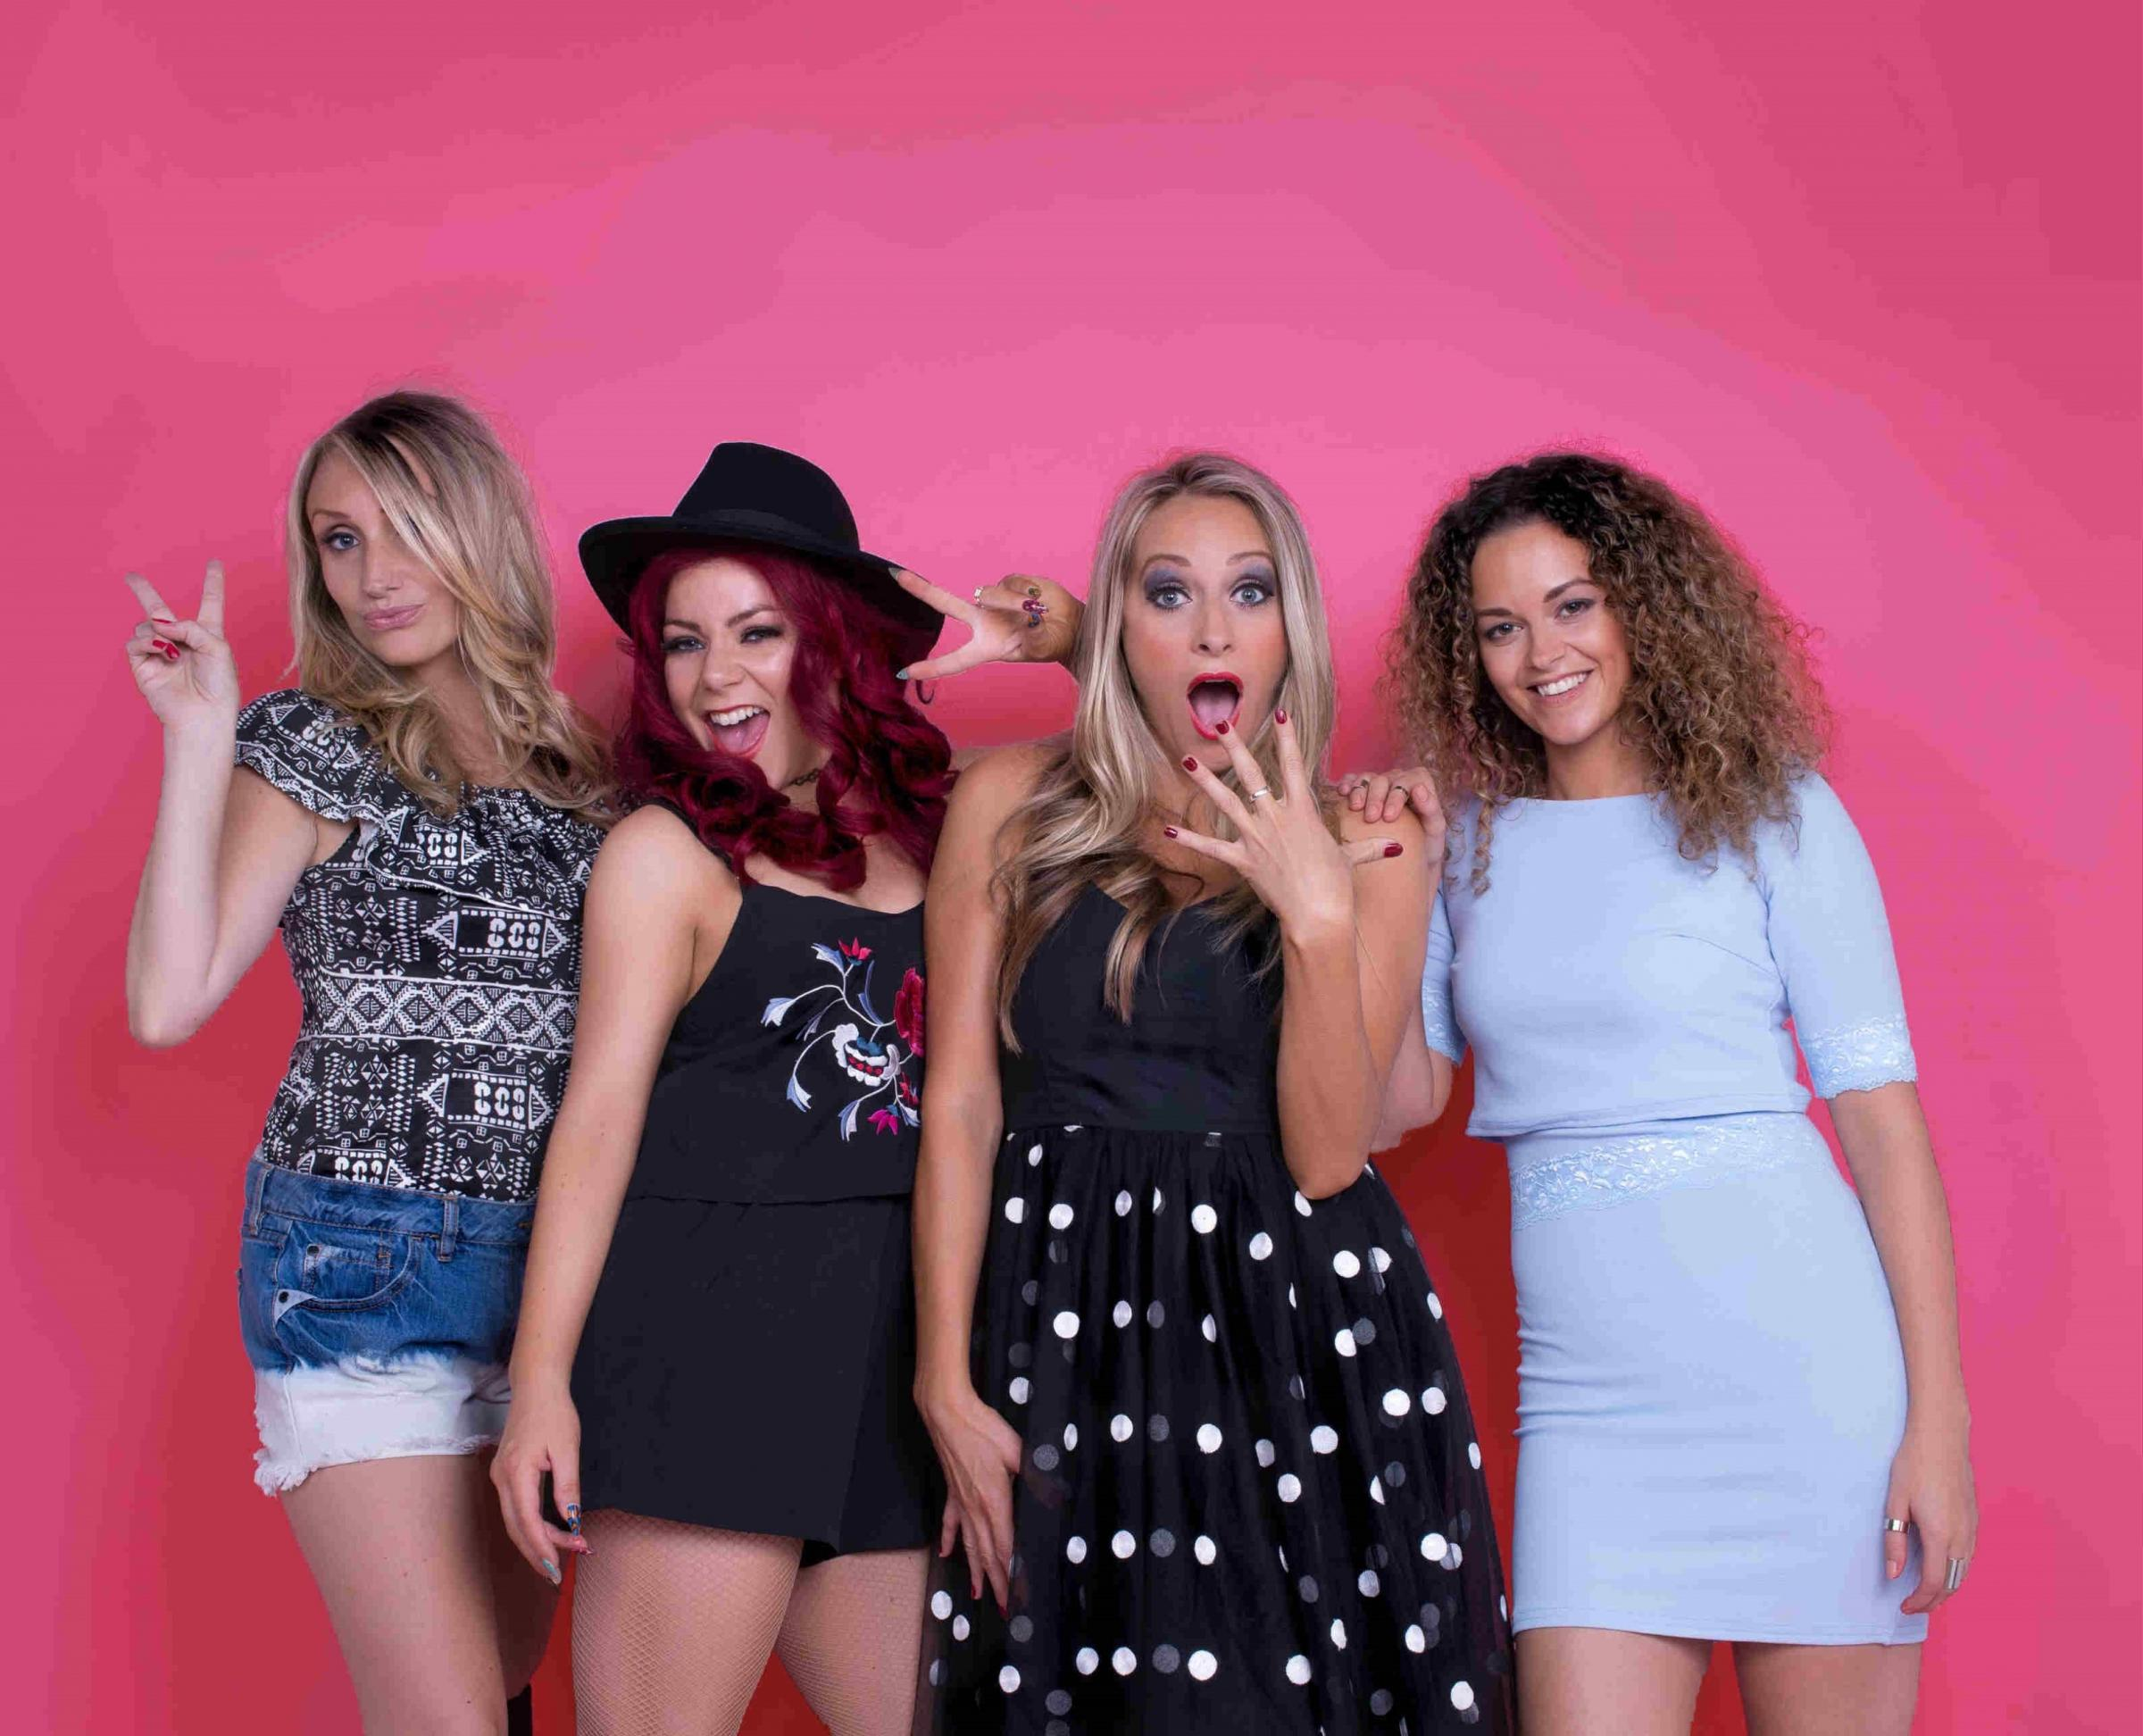 Black Magic celebrates the music of award-winning girl band Little Mix